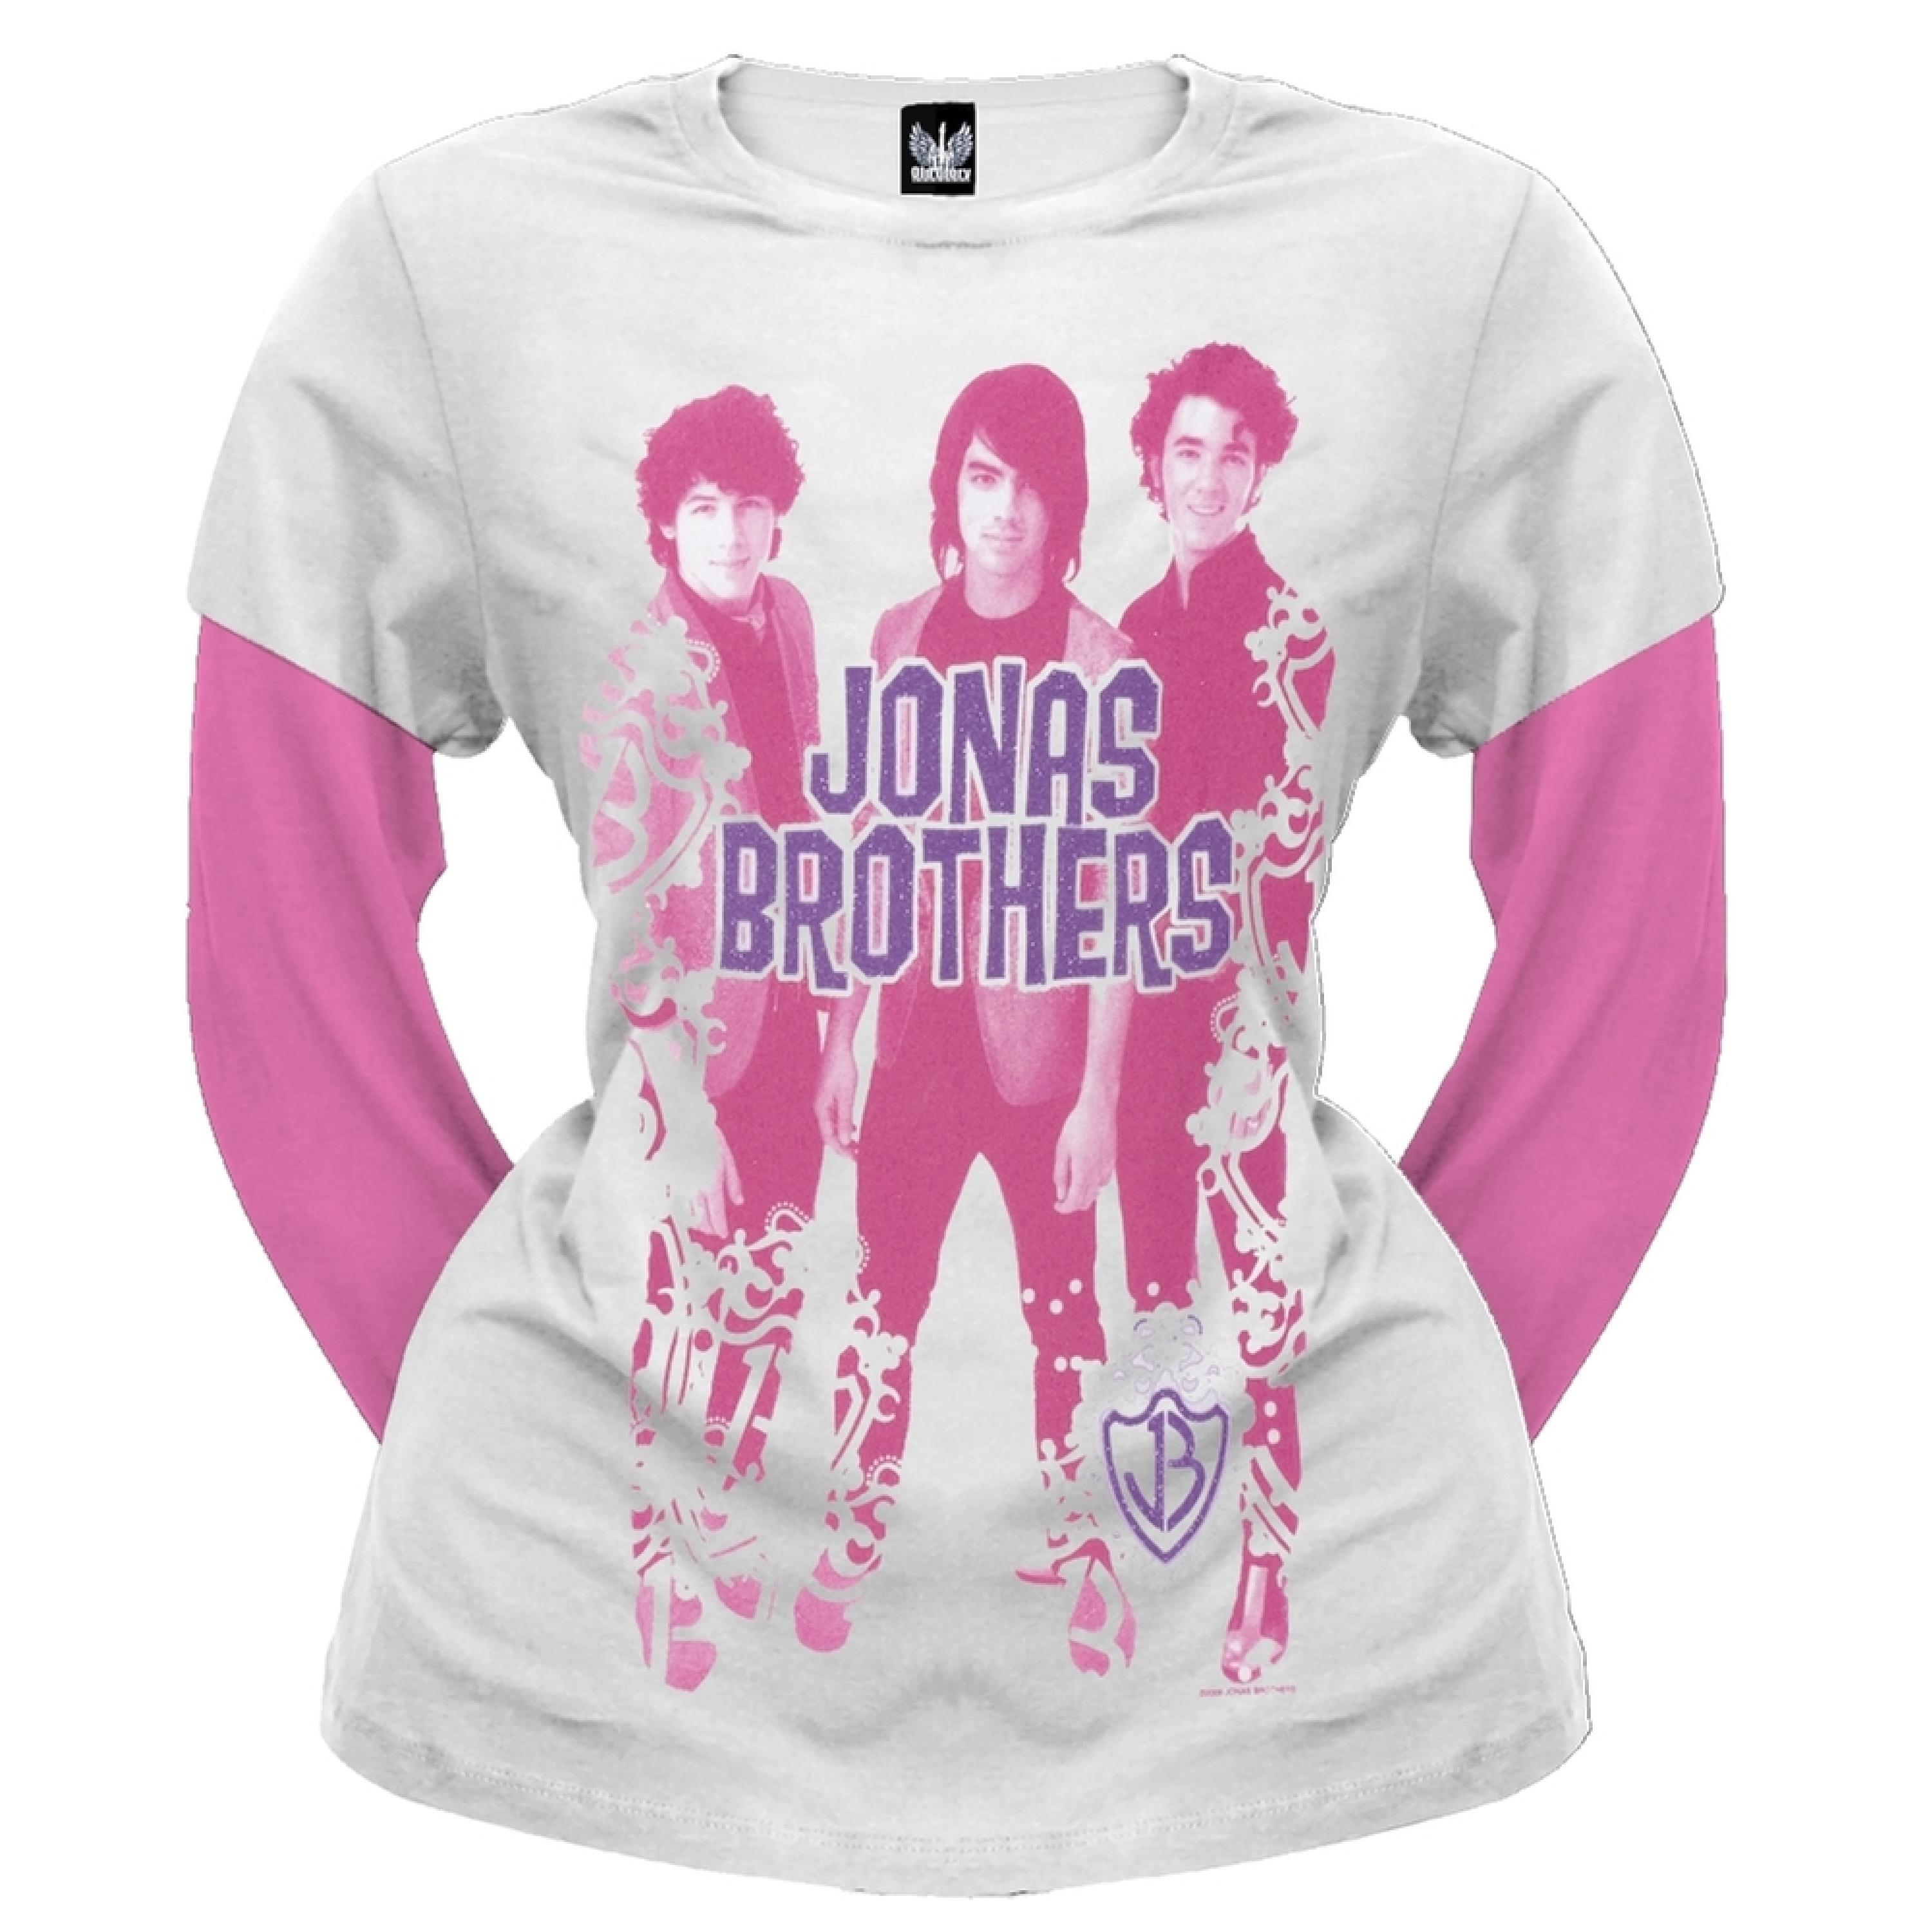 Jonas Brothers - Crest Border Girls Youth 2Fer Long Sleeve T-Shirt